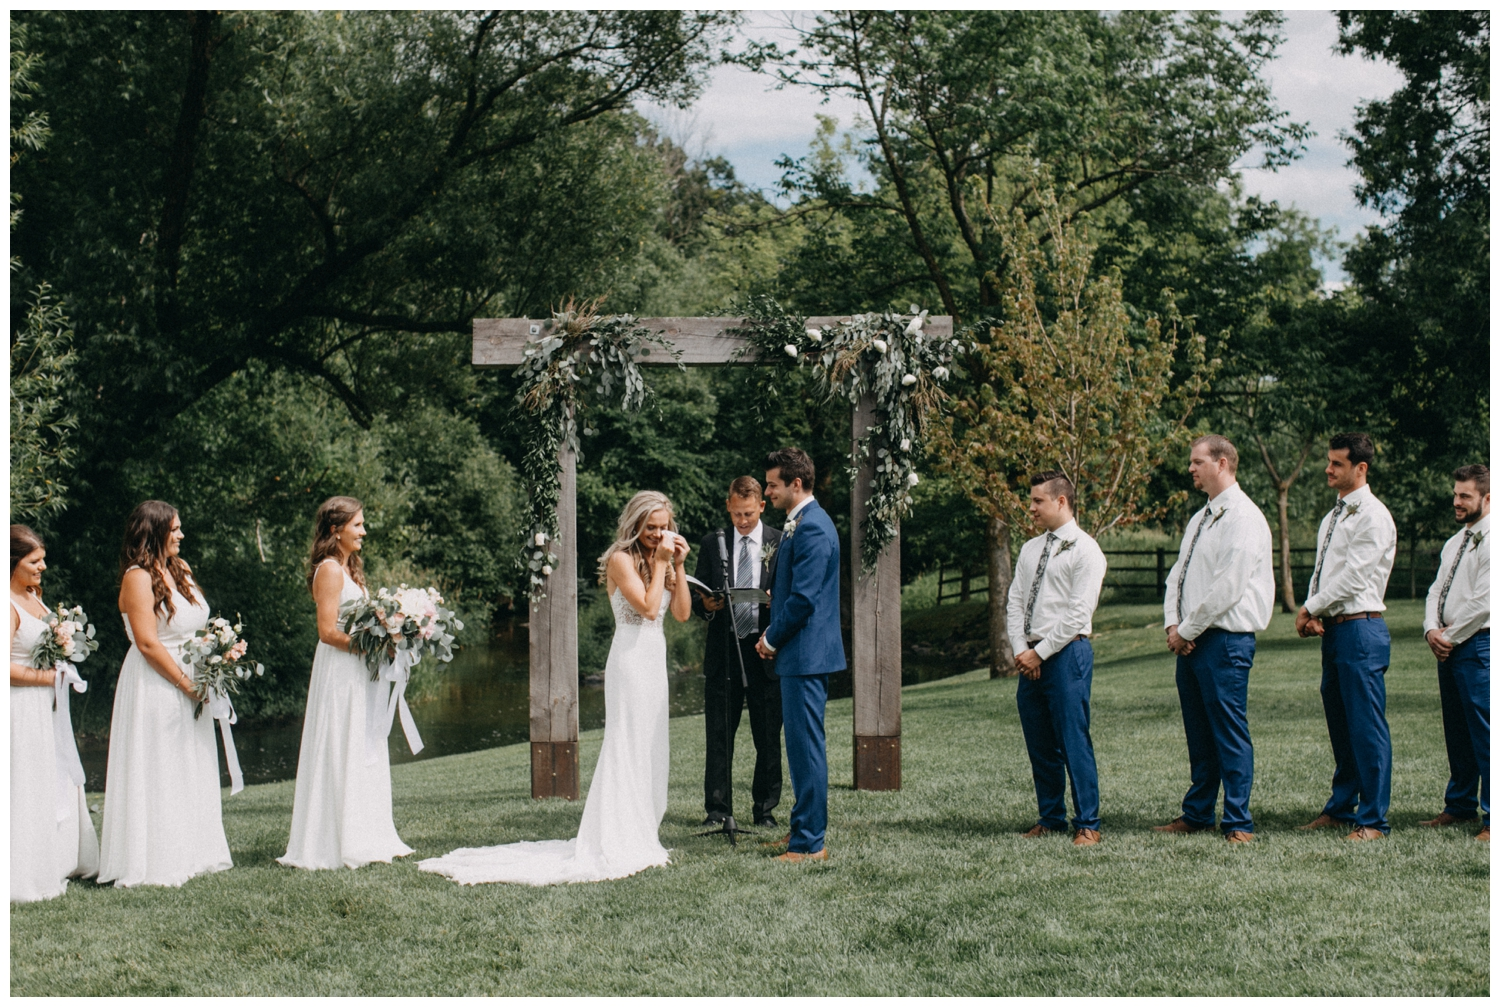 Emotional wedding ceremony at Creekside Farm